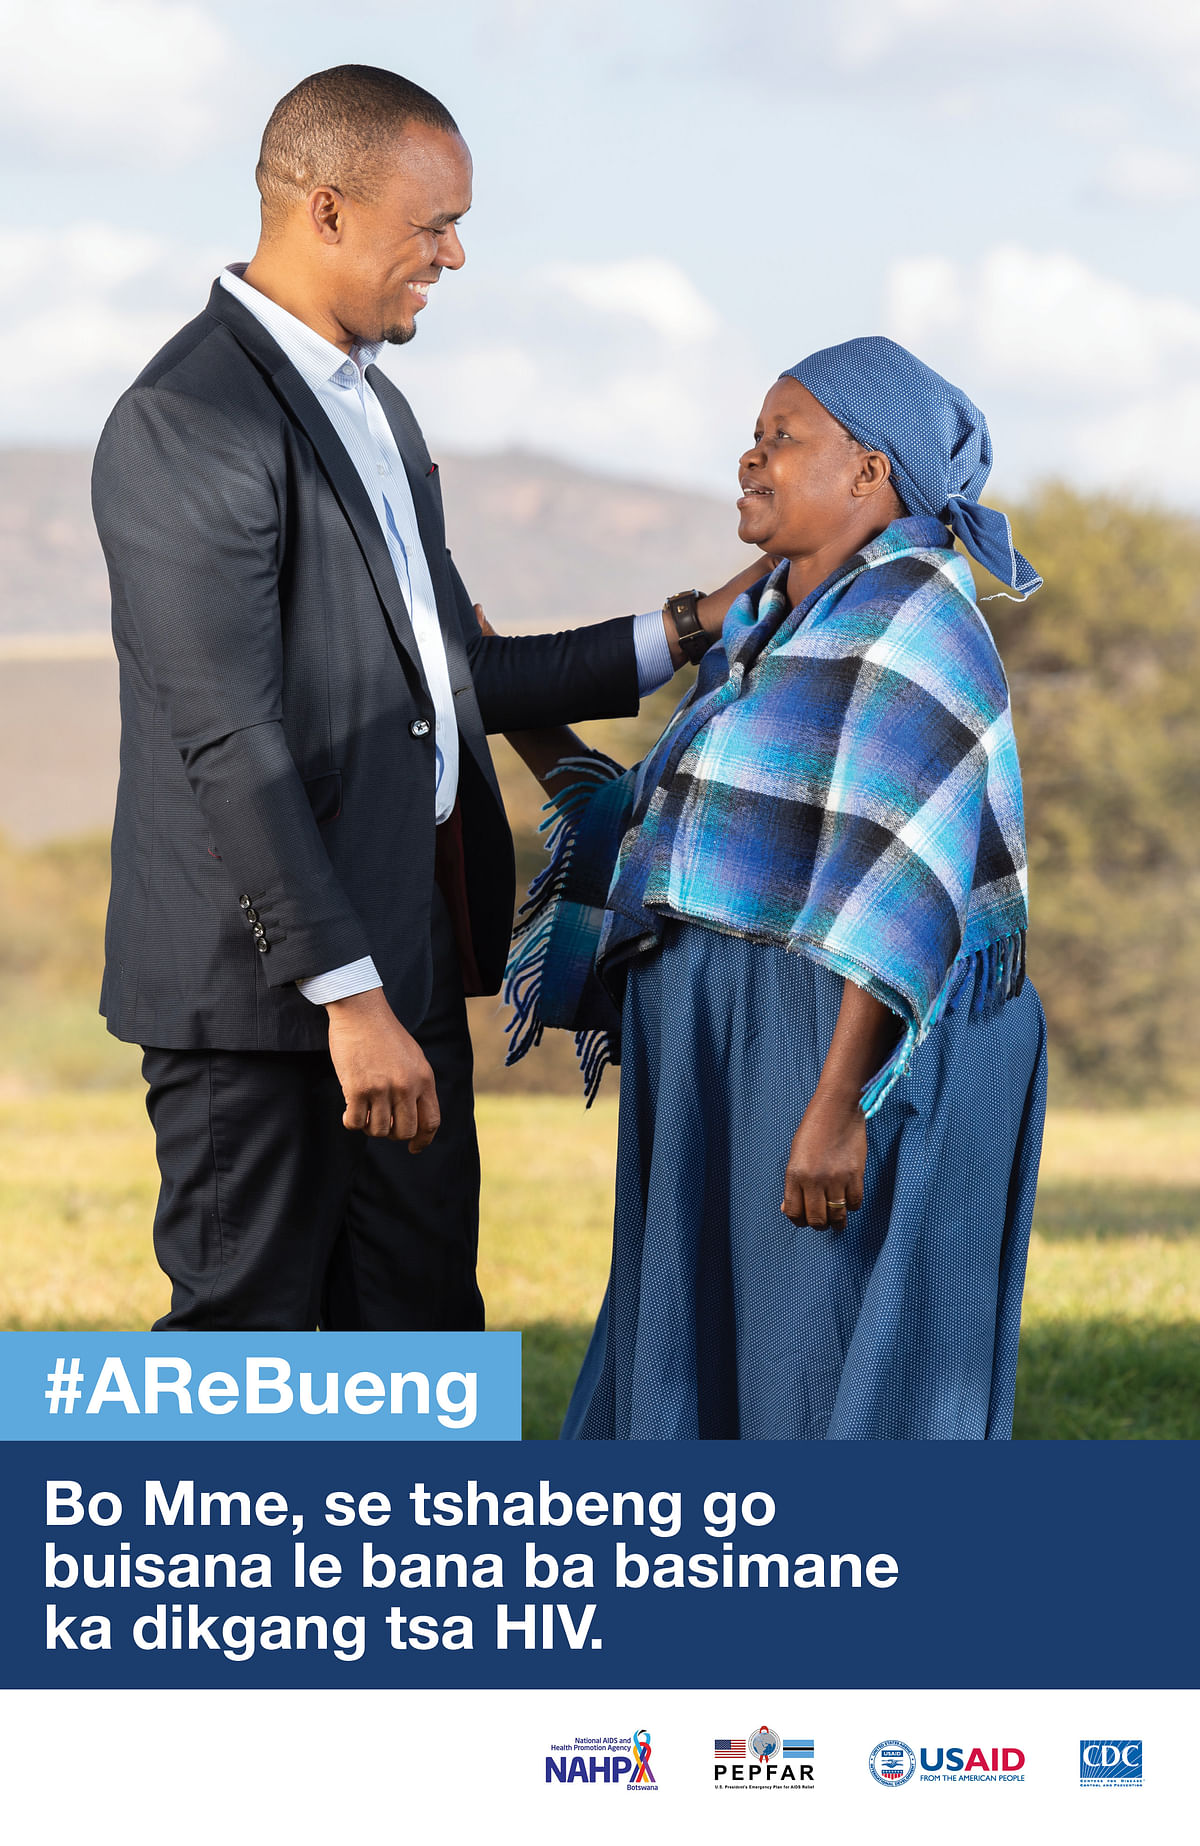 #AReBueng Campaign